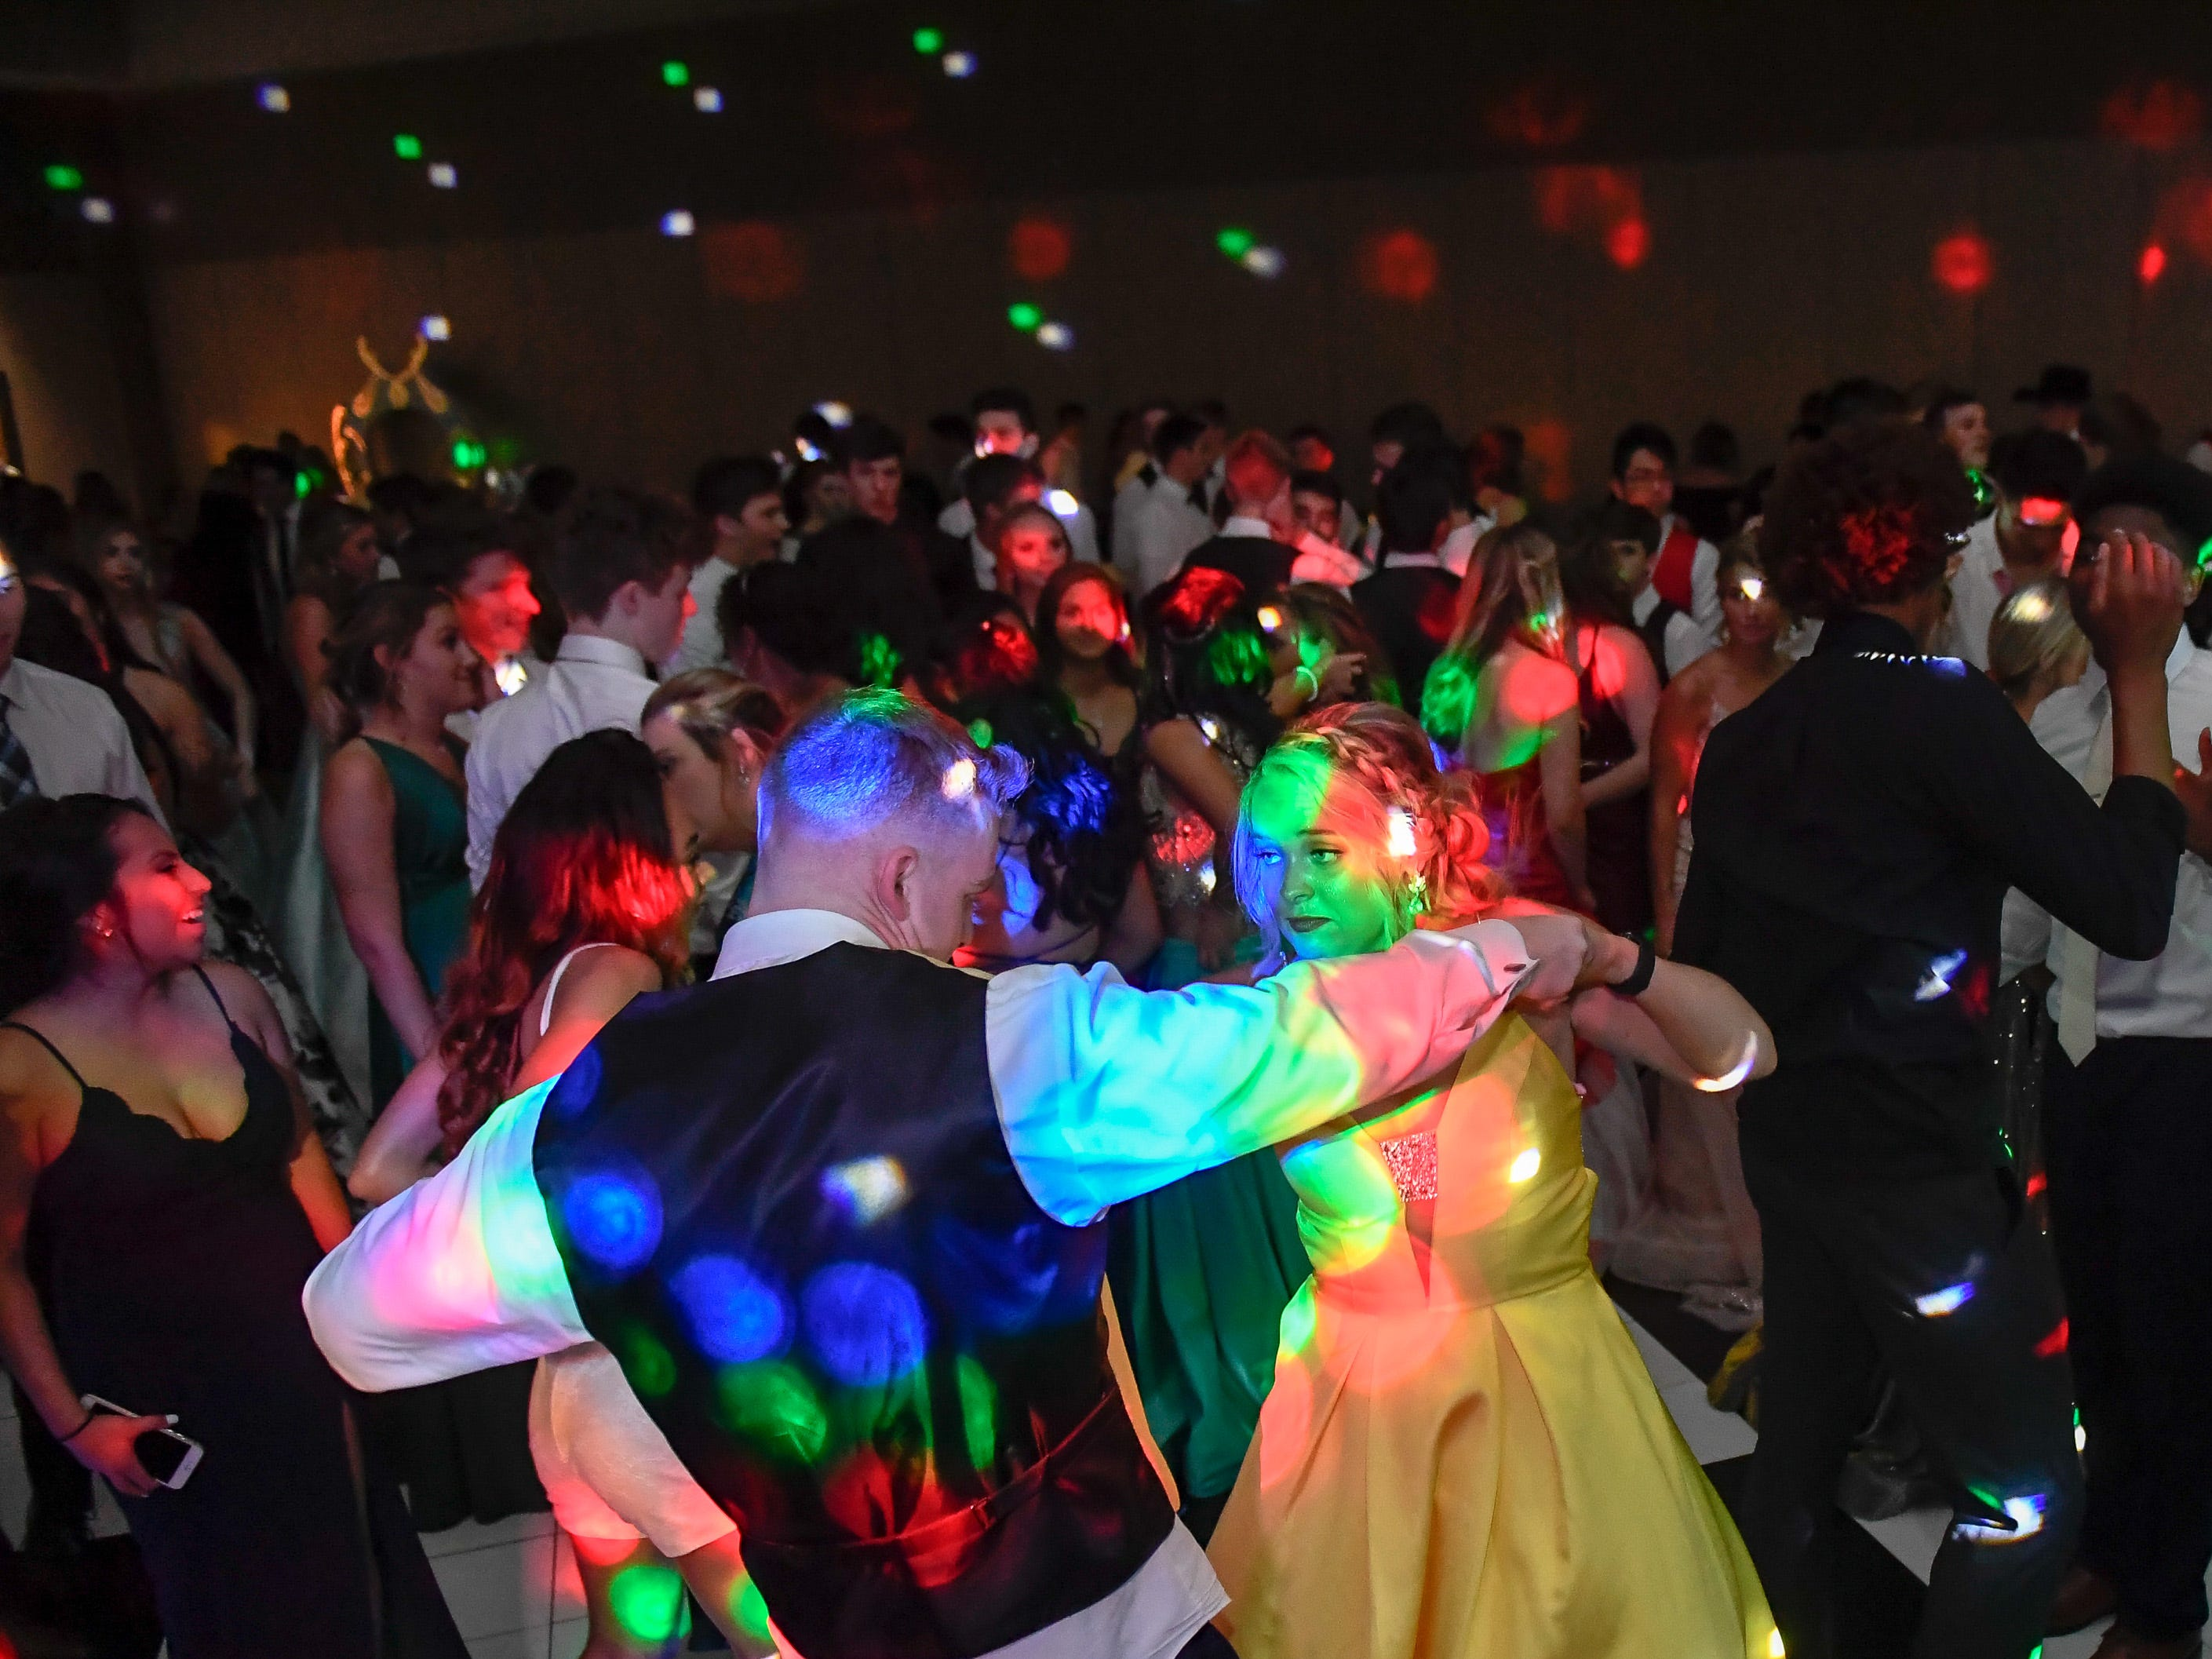 Katelynn Davis and Max Green on the dance floor at the Memorial High School prom, held at the Old National Events Center Plaza Saturday, April 27, 2019.